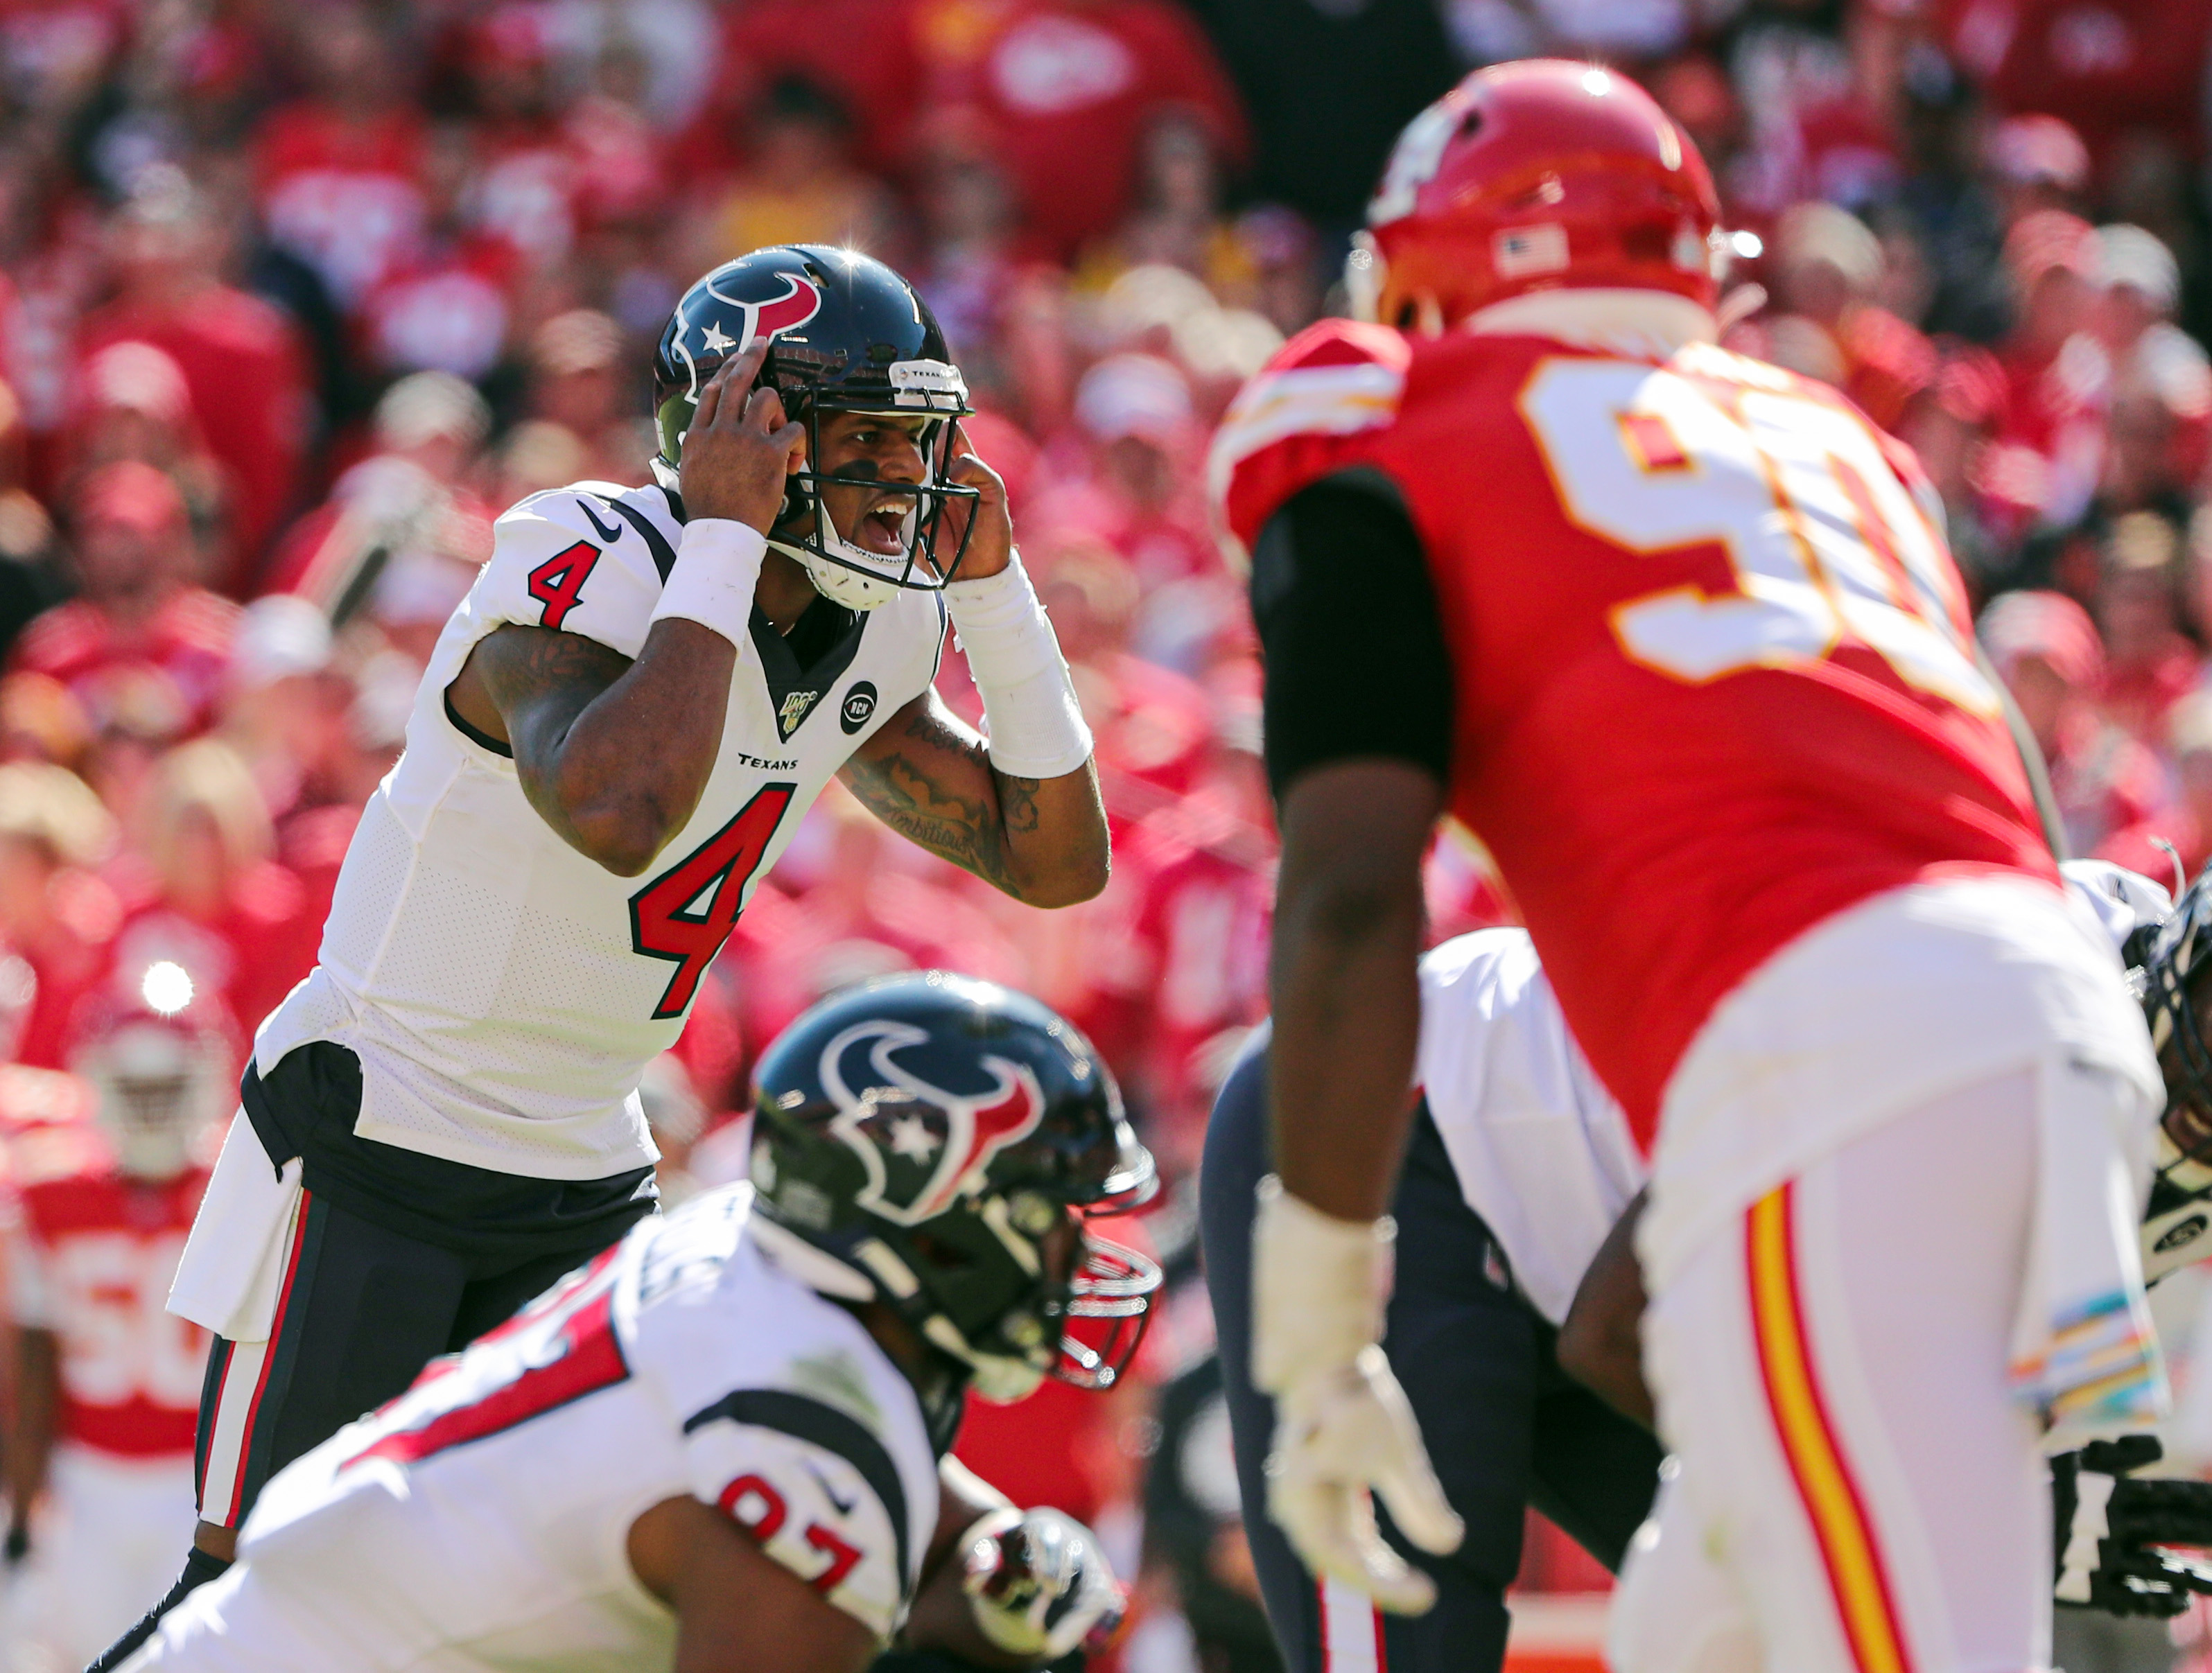 Patrick Mahomes, Deshaun Watson take center stage in Chiefs-Texans matchup